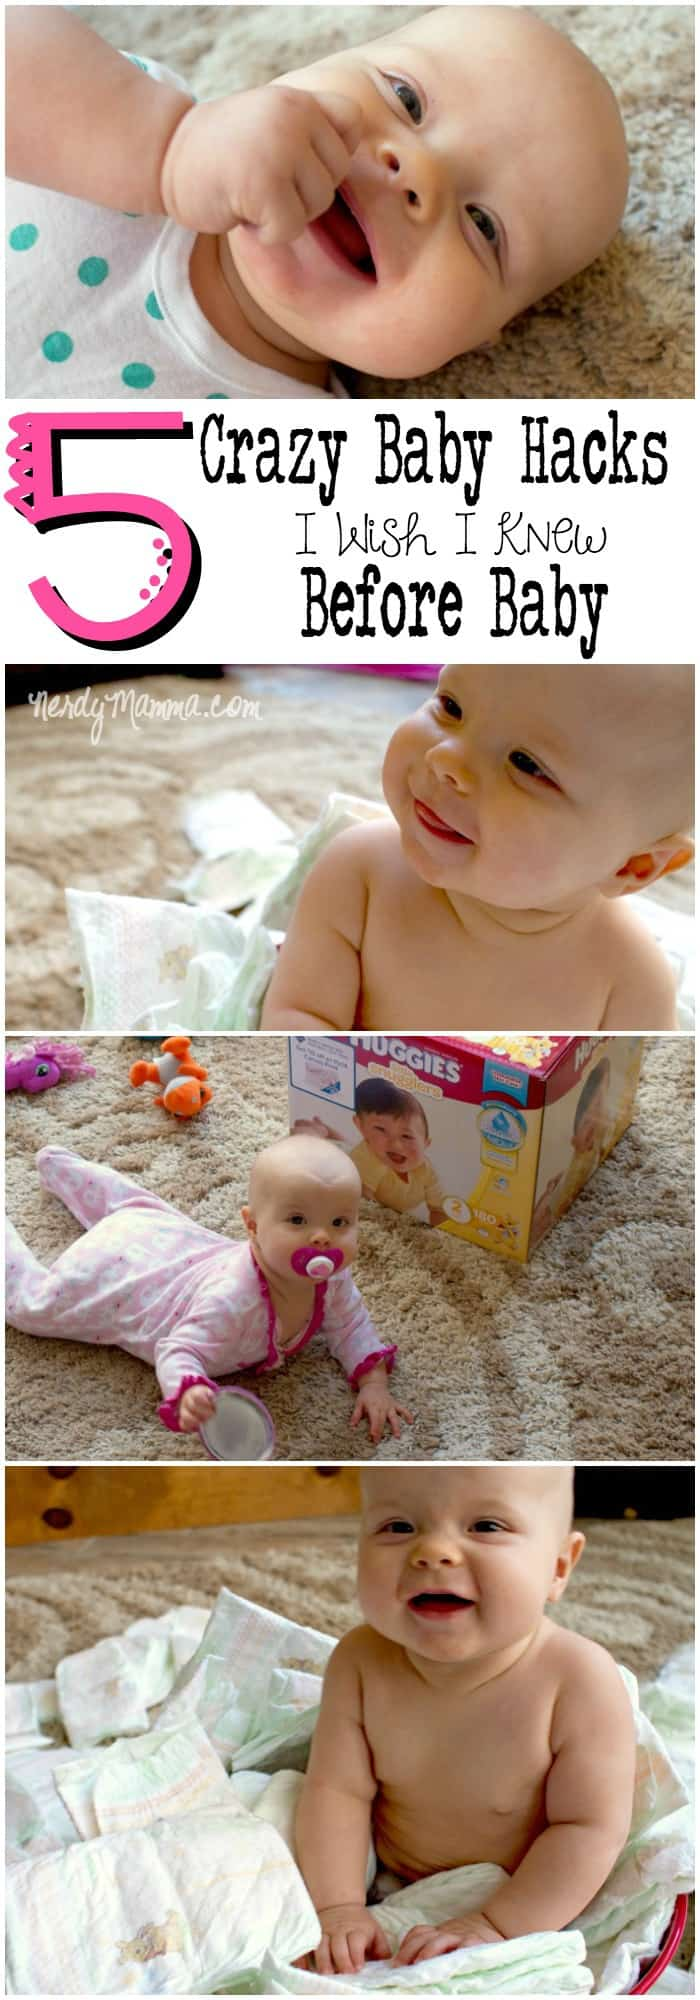 These crazy baby hacks are so awesome. I mean, they really are so helpful--and funny. And #3...I dd not know that...genius.